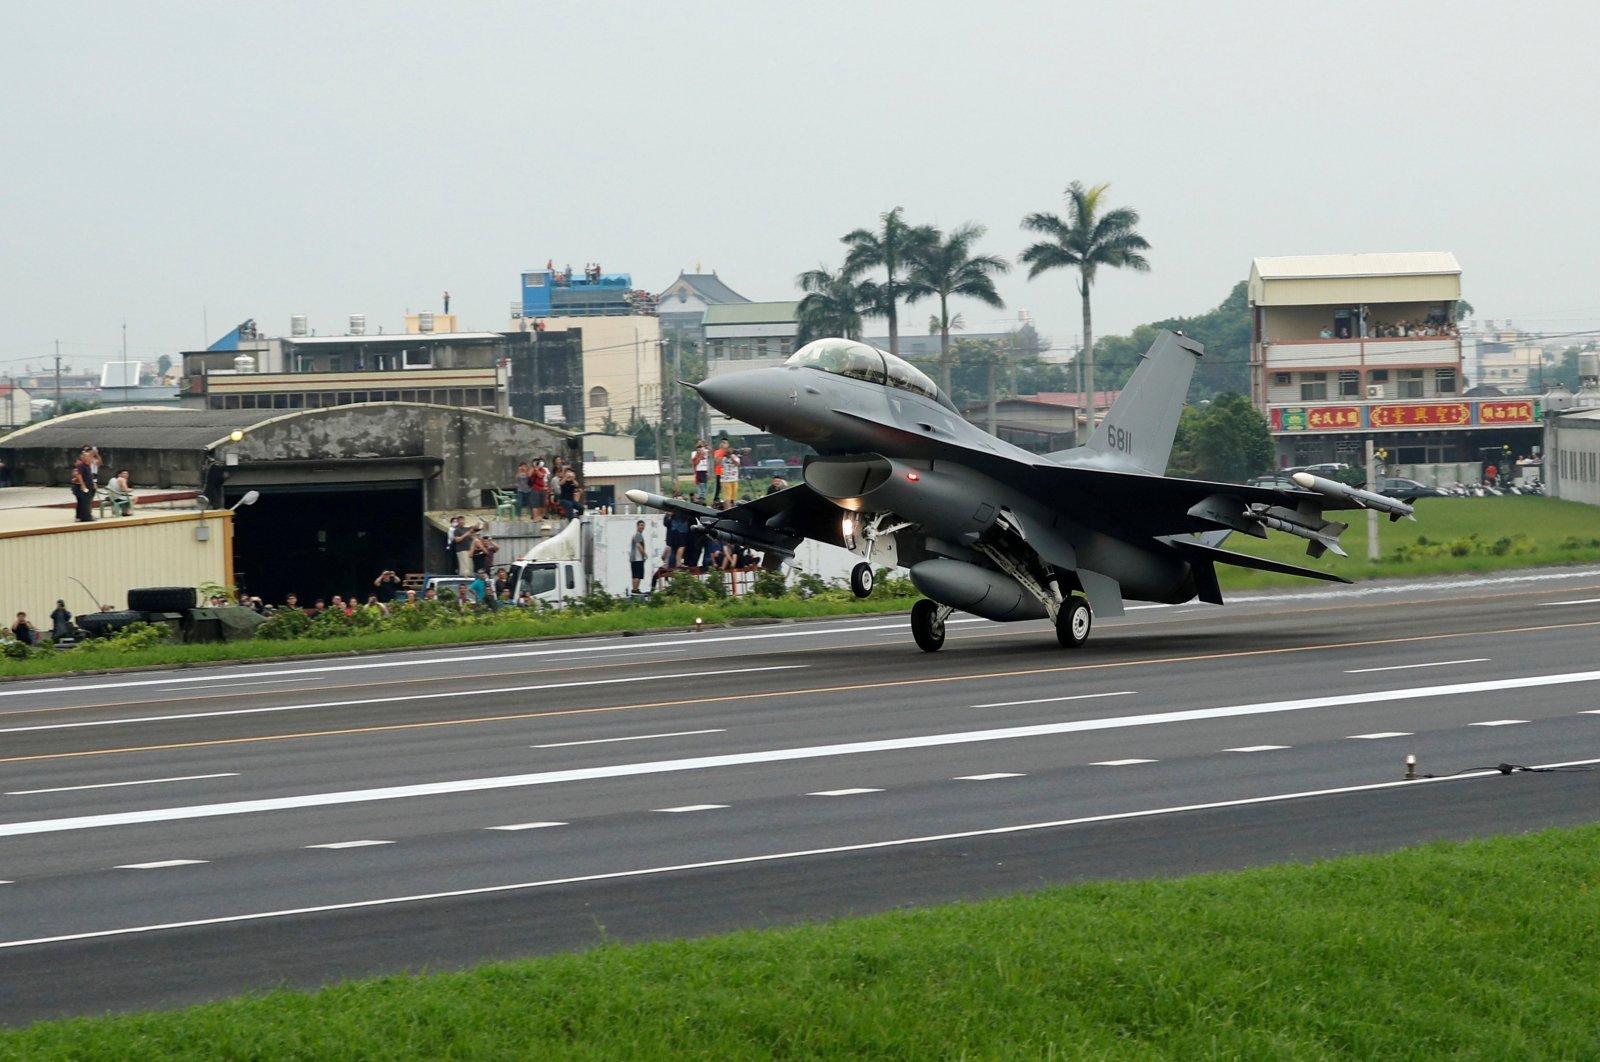 A ROCAF F16V fighter jet lands on a highway used as an emergency runway during the Han Kuang military exercise simulating China's People's Liberation Army (PLA) invading the island, Changhua, Taiwan May 28, 2019. (Reuters Photo)